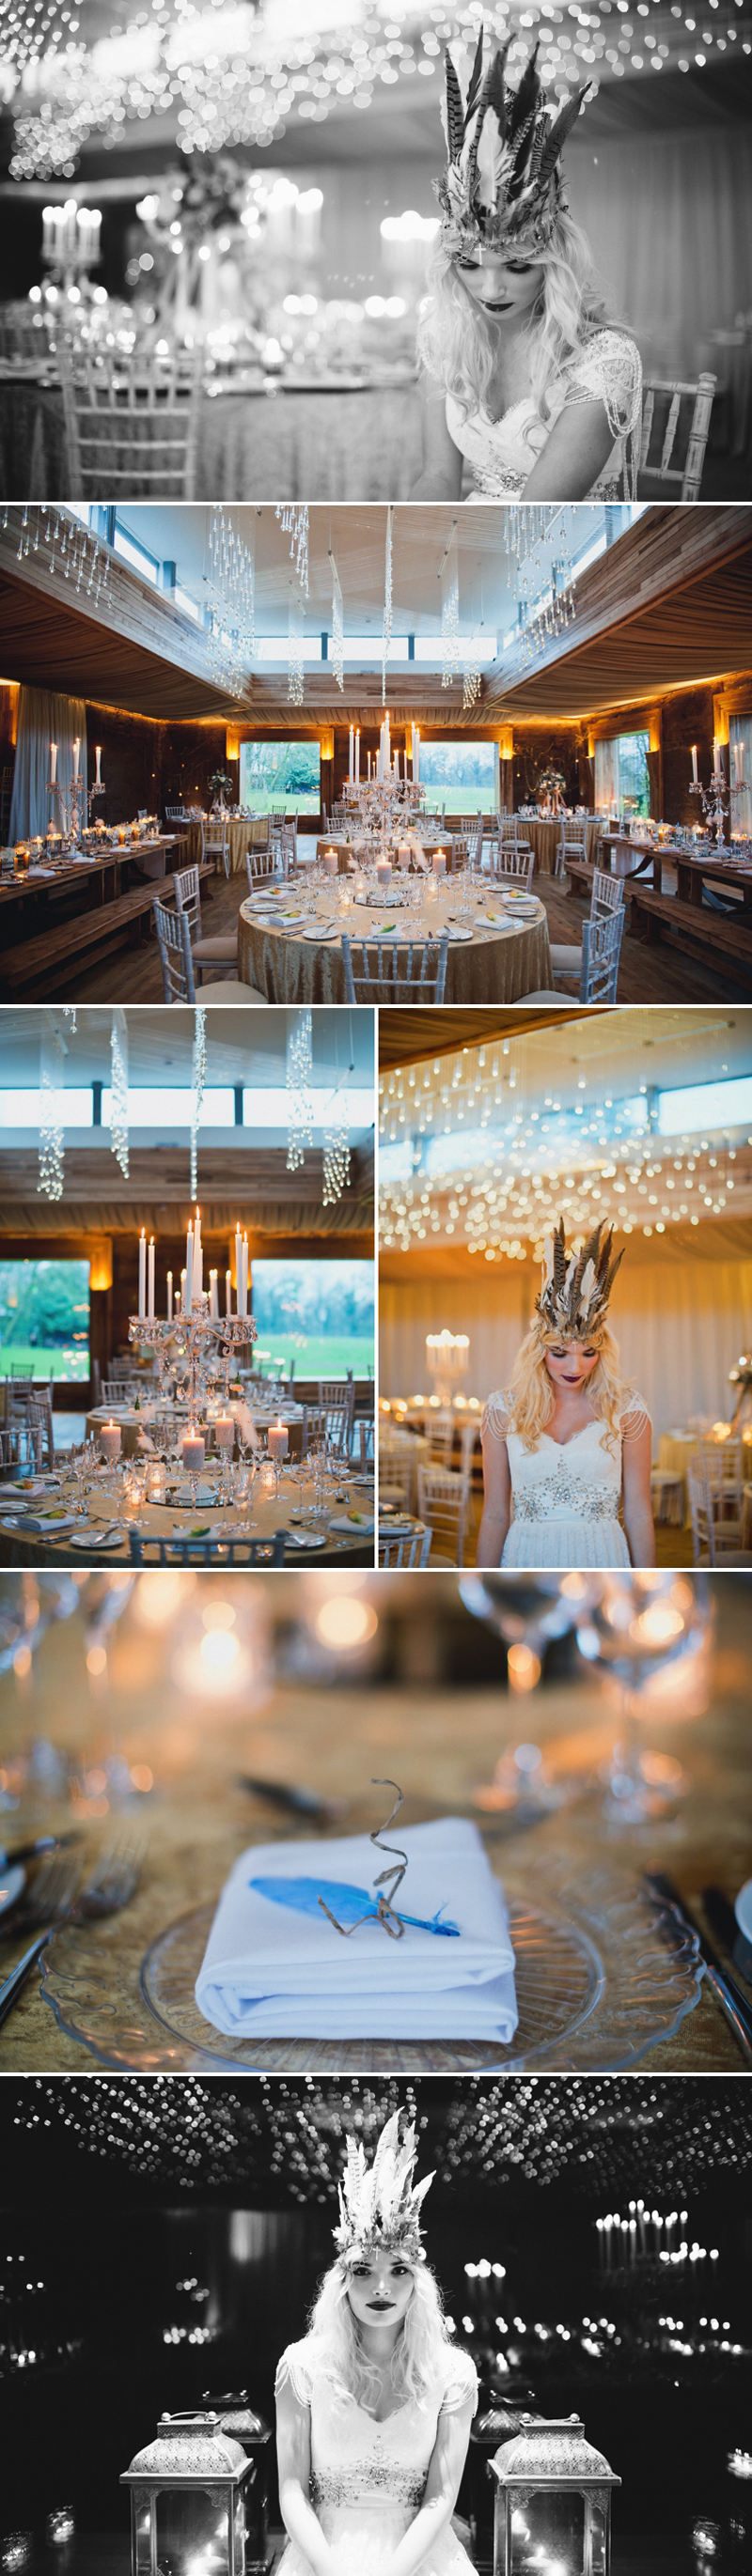 bohemian-bridal-styled-shoot-elmore-court-coco-wedding-venues-layer-3